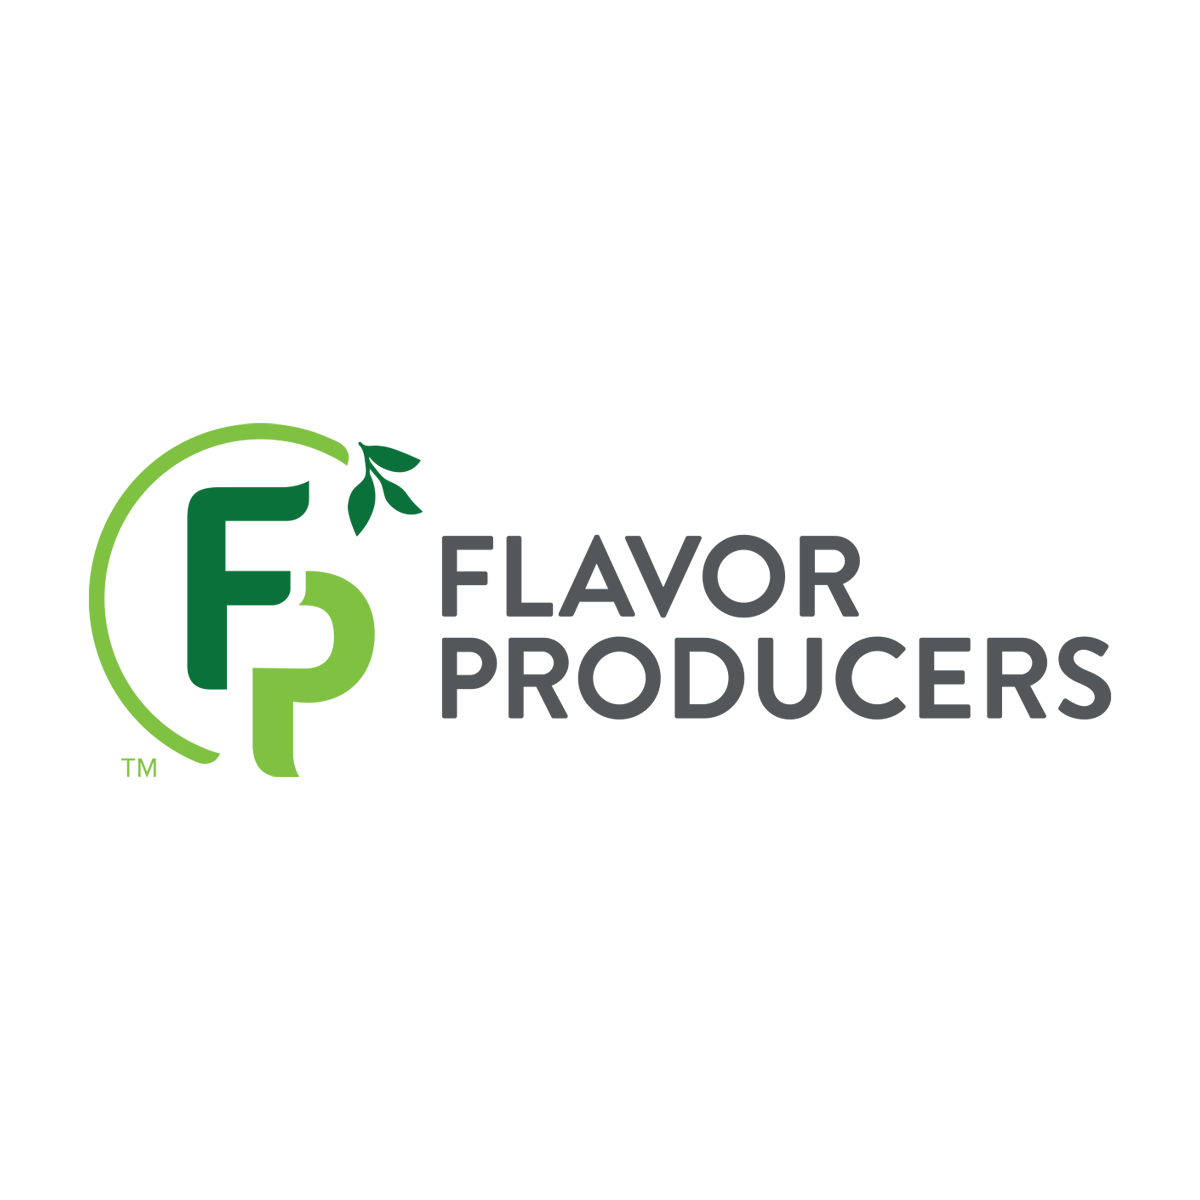 Flavor Producers